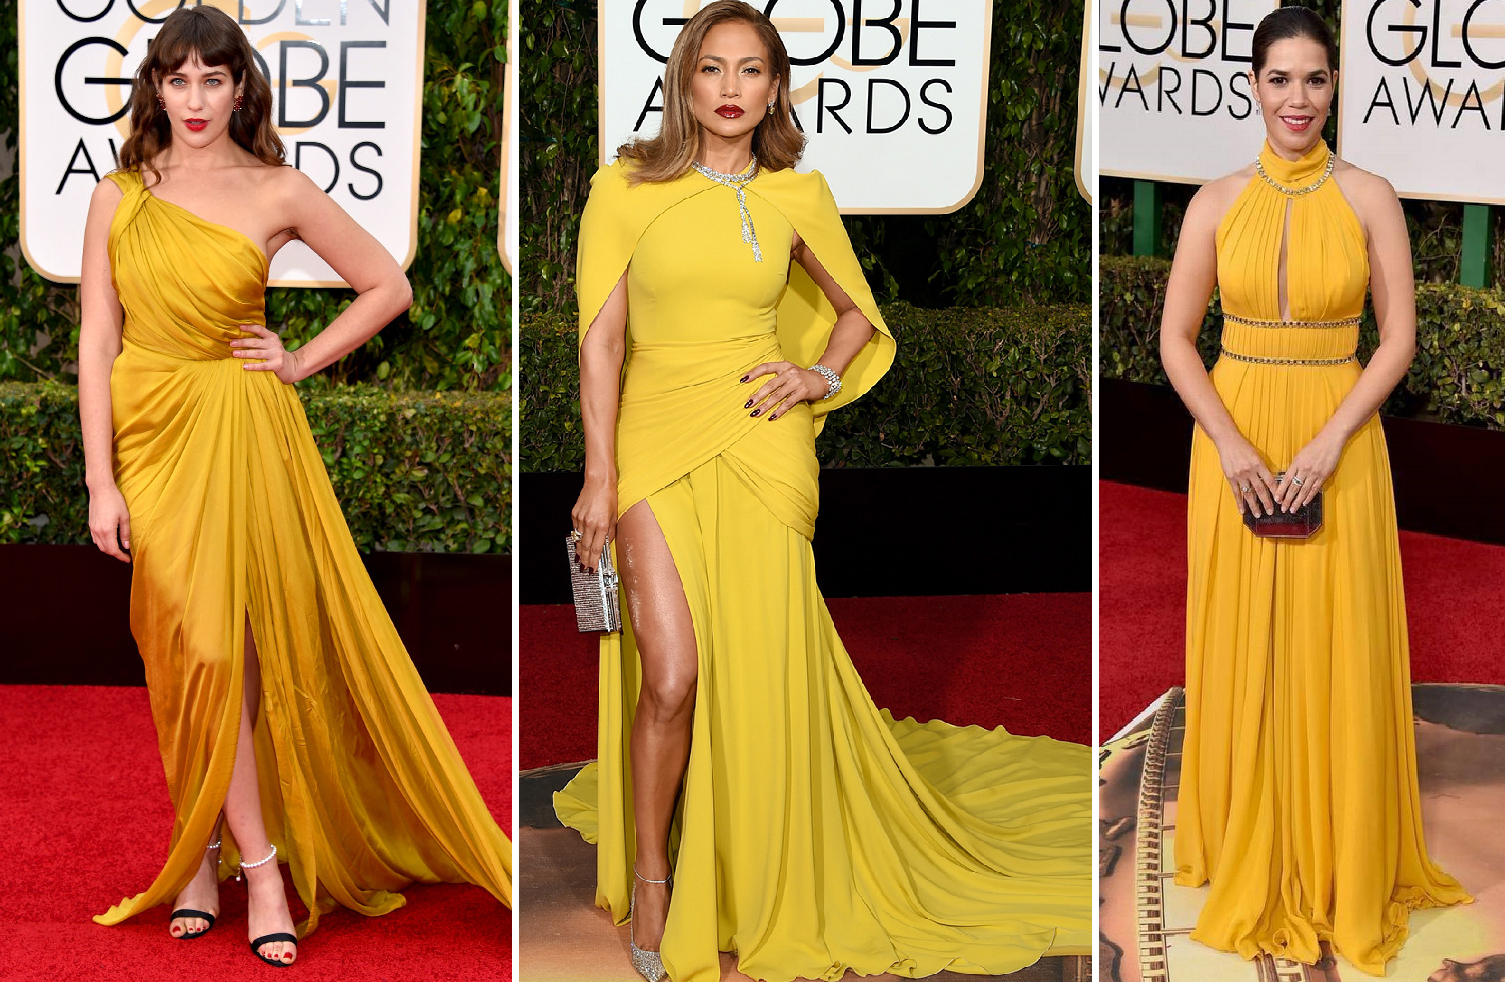 Canary was the call - Lola Kirke, sister to Girls' Jemima Kirke in Monique L'Huilier, Jennifer Lopez in Giambattista Valli, America Ferrera in Jenny Packham